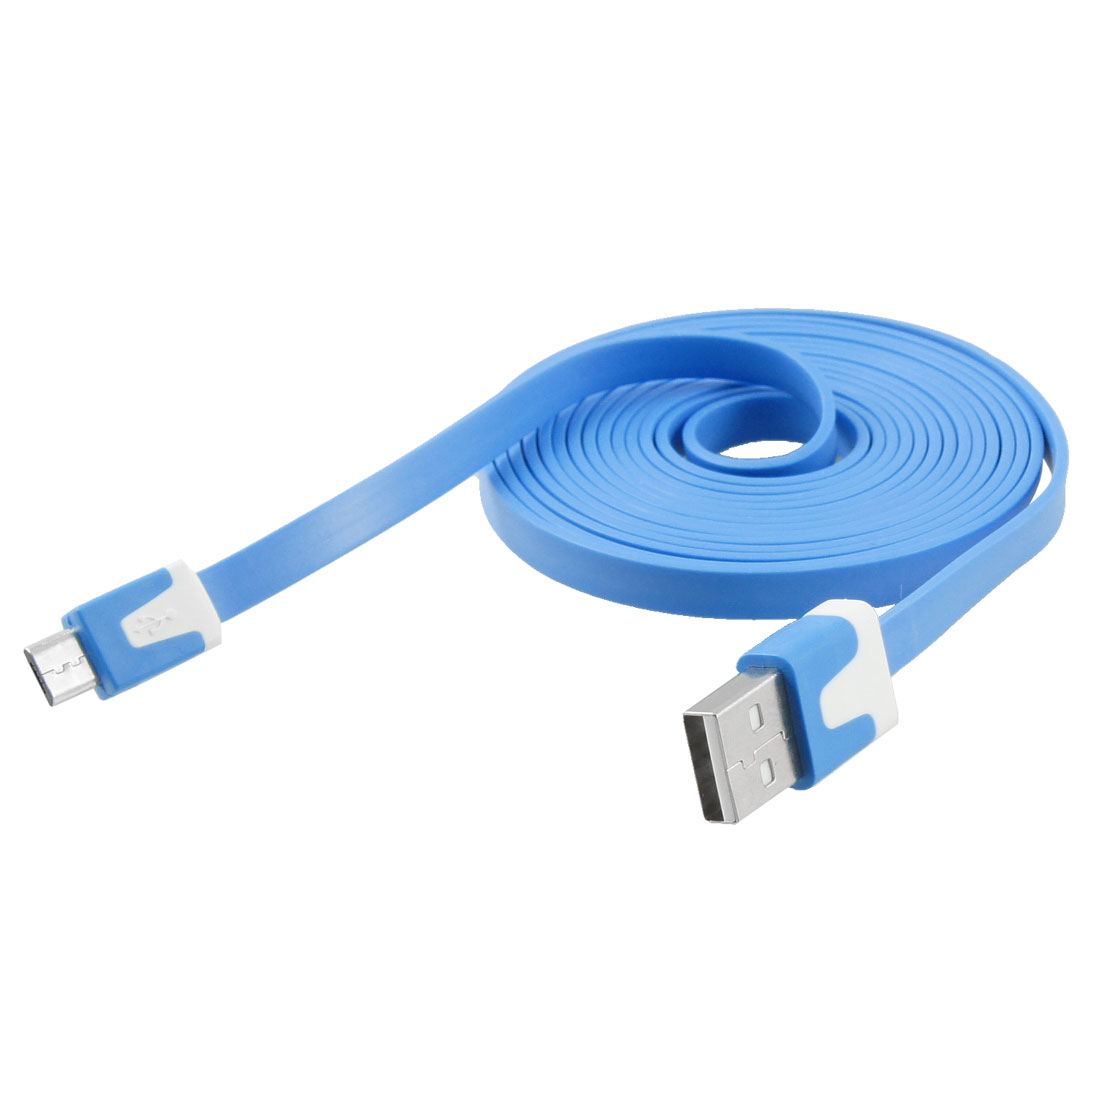 2M Plastic Sync Data Charging Flat Line USB Cable Sky Blue for Motorola V8